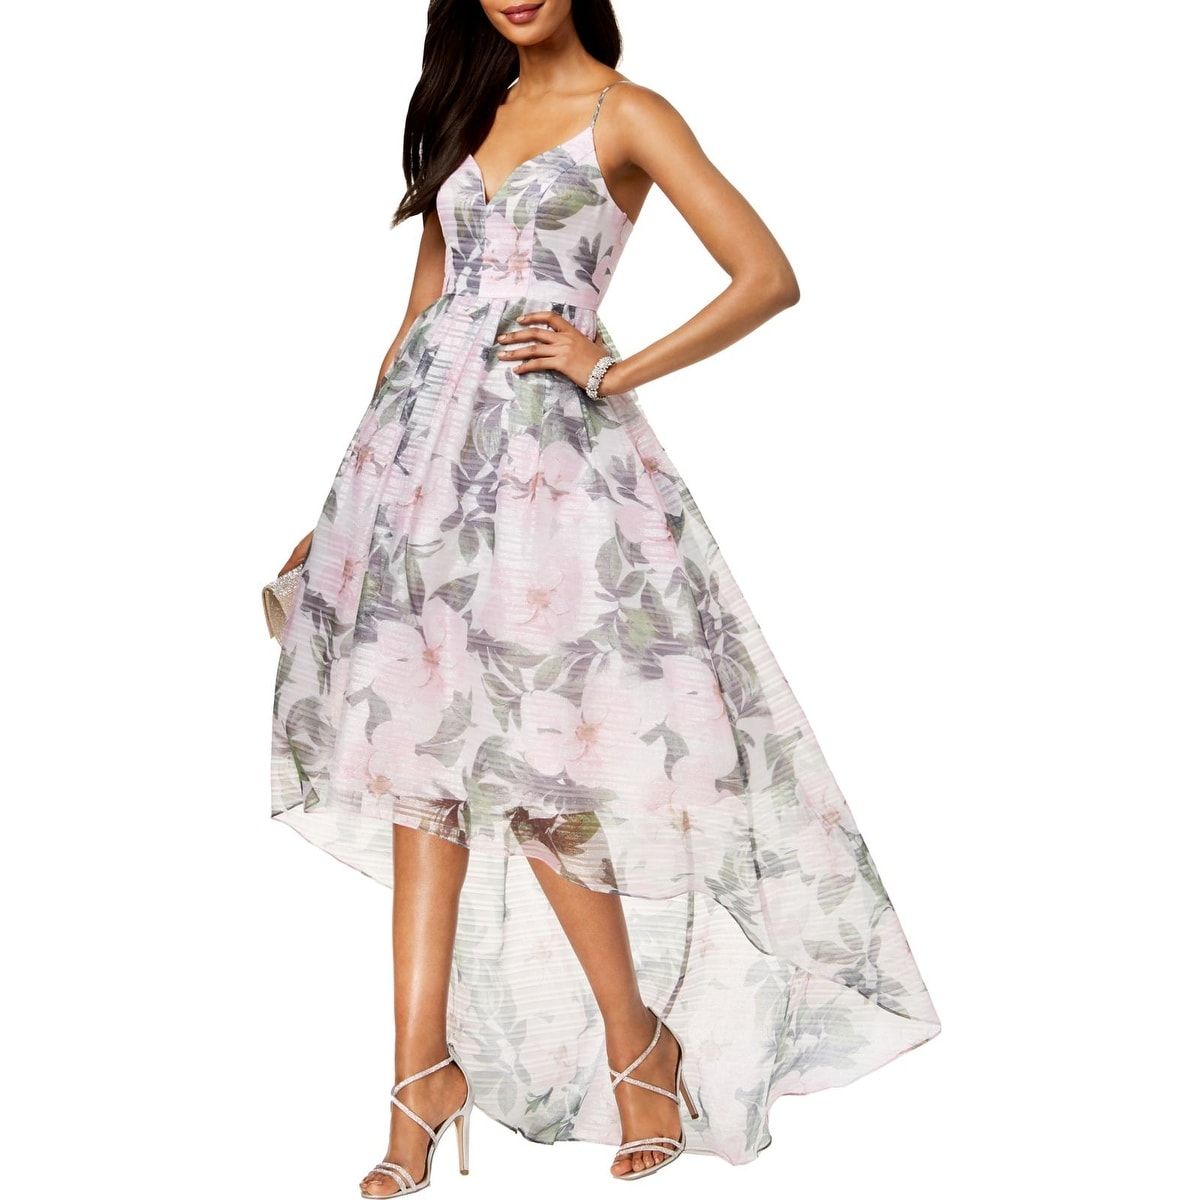 661161a3f3352 Betsy & Adam Dresses | Find Great Women's Clothing Deals Shopping at  Overstock